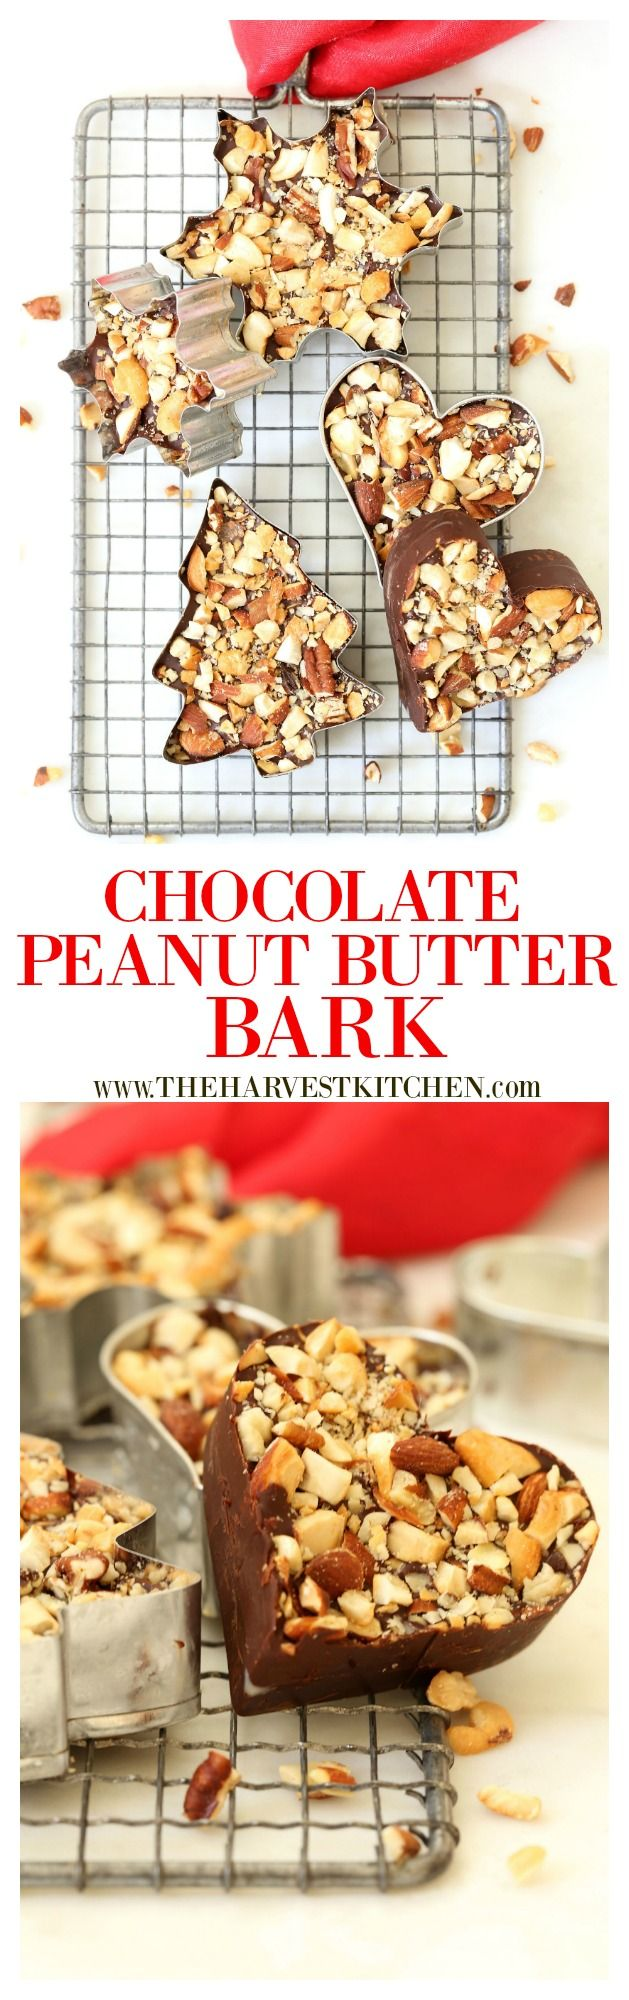 This Healthy Dark Chocolate Bark is made with dark chocolate, peanut butter, chopped pretzels and chopped roasted nuts. This recipe is quick, easy, and super fun to make. It's also highly addictive!